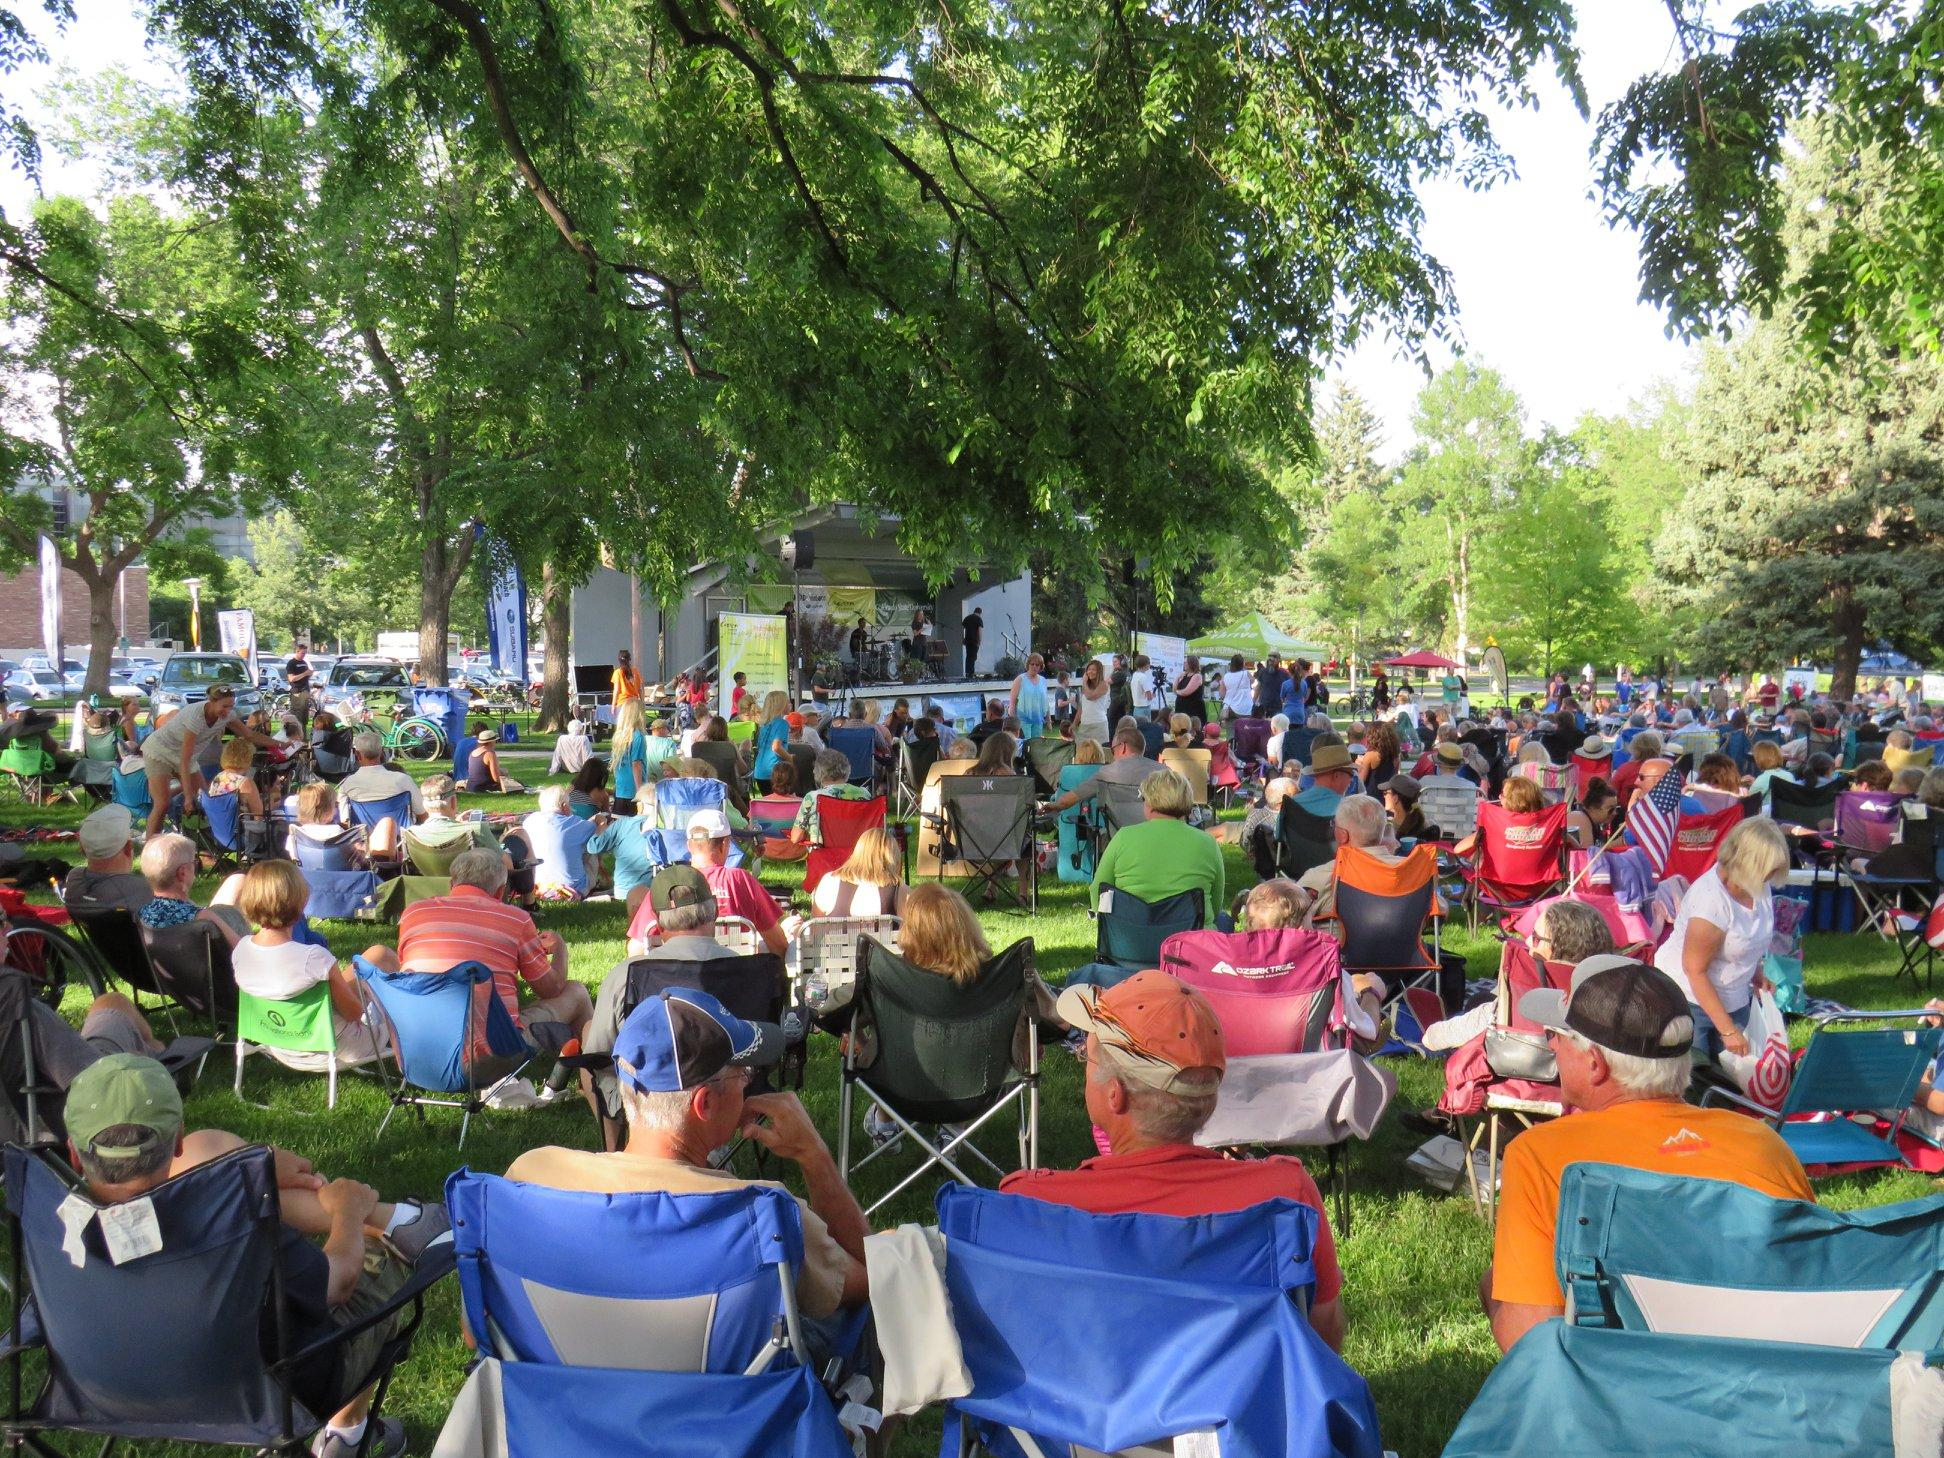 The crowd enjoys a wonderful evening at the 2018 Lagoon Summer Concert Series.